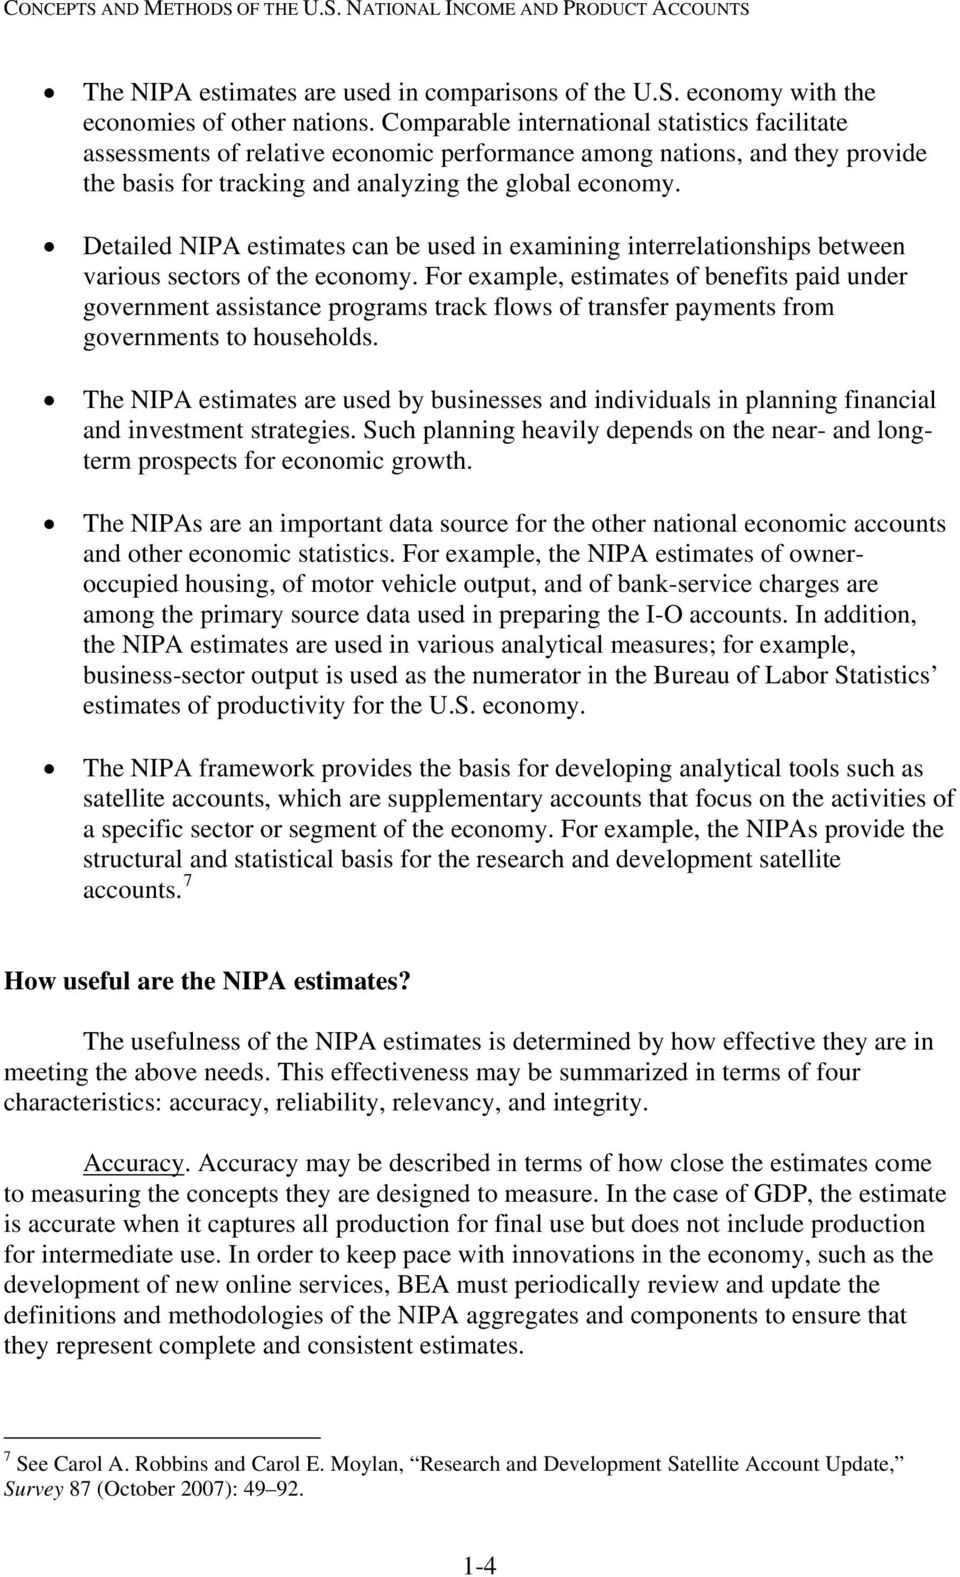 Detailed NIPA estimates can be used in examining interrelationships between various sectors of the economy.